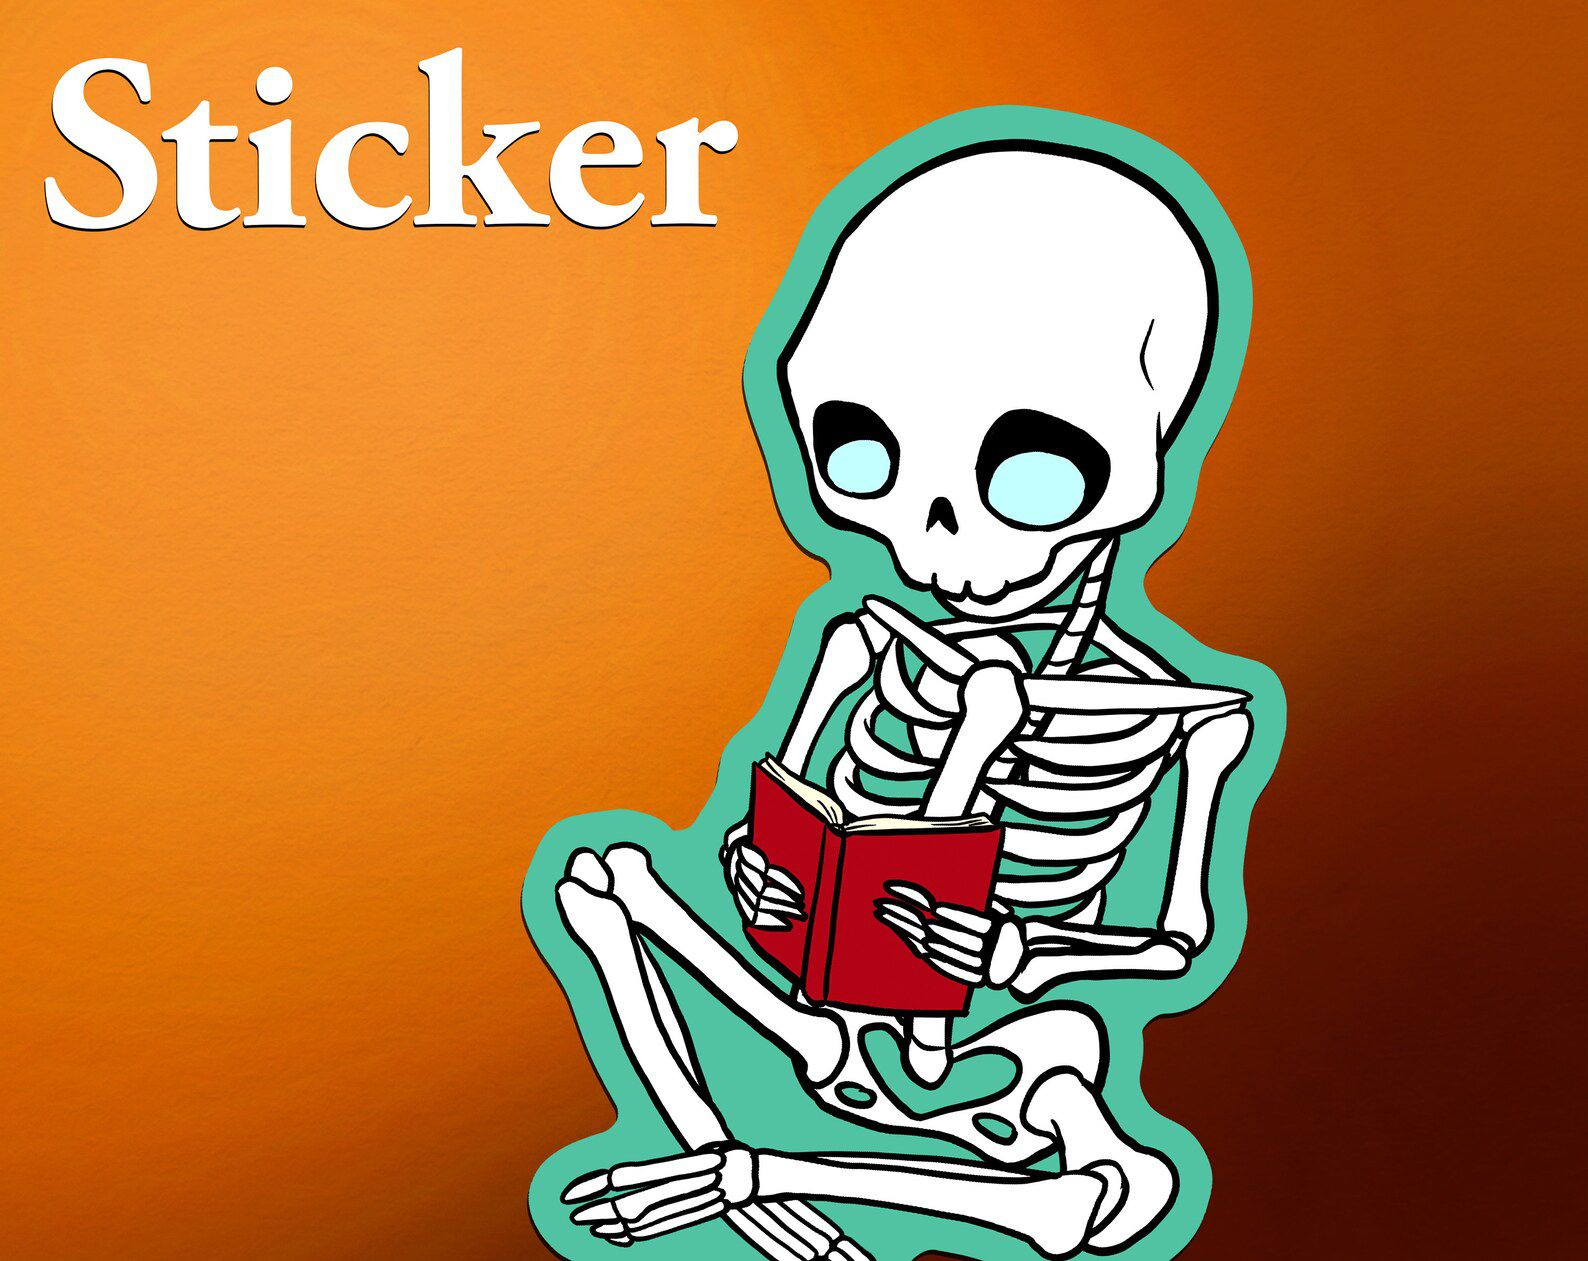 Image of a skeleton reading a book on and orange background.